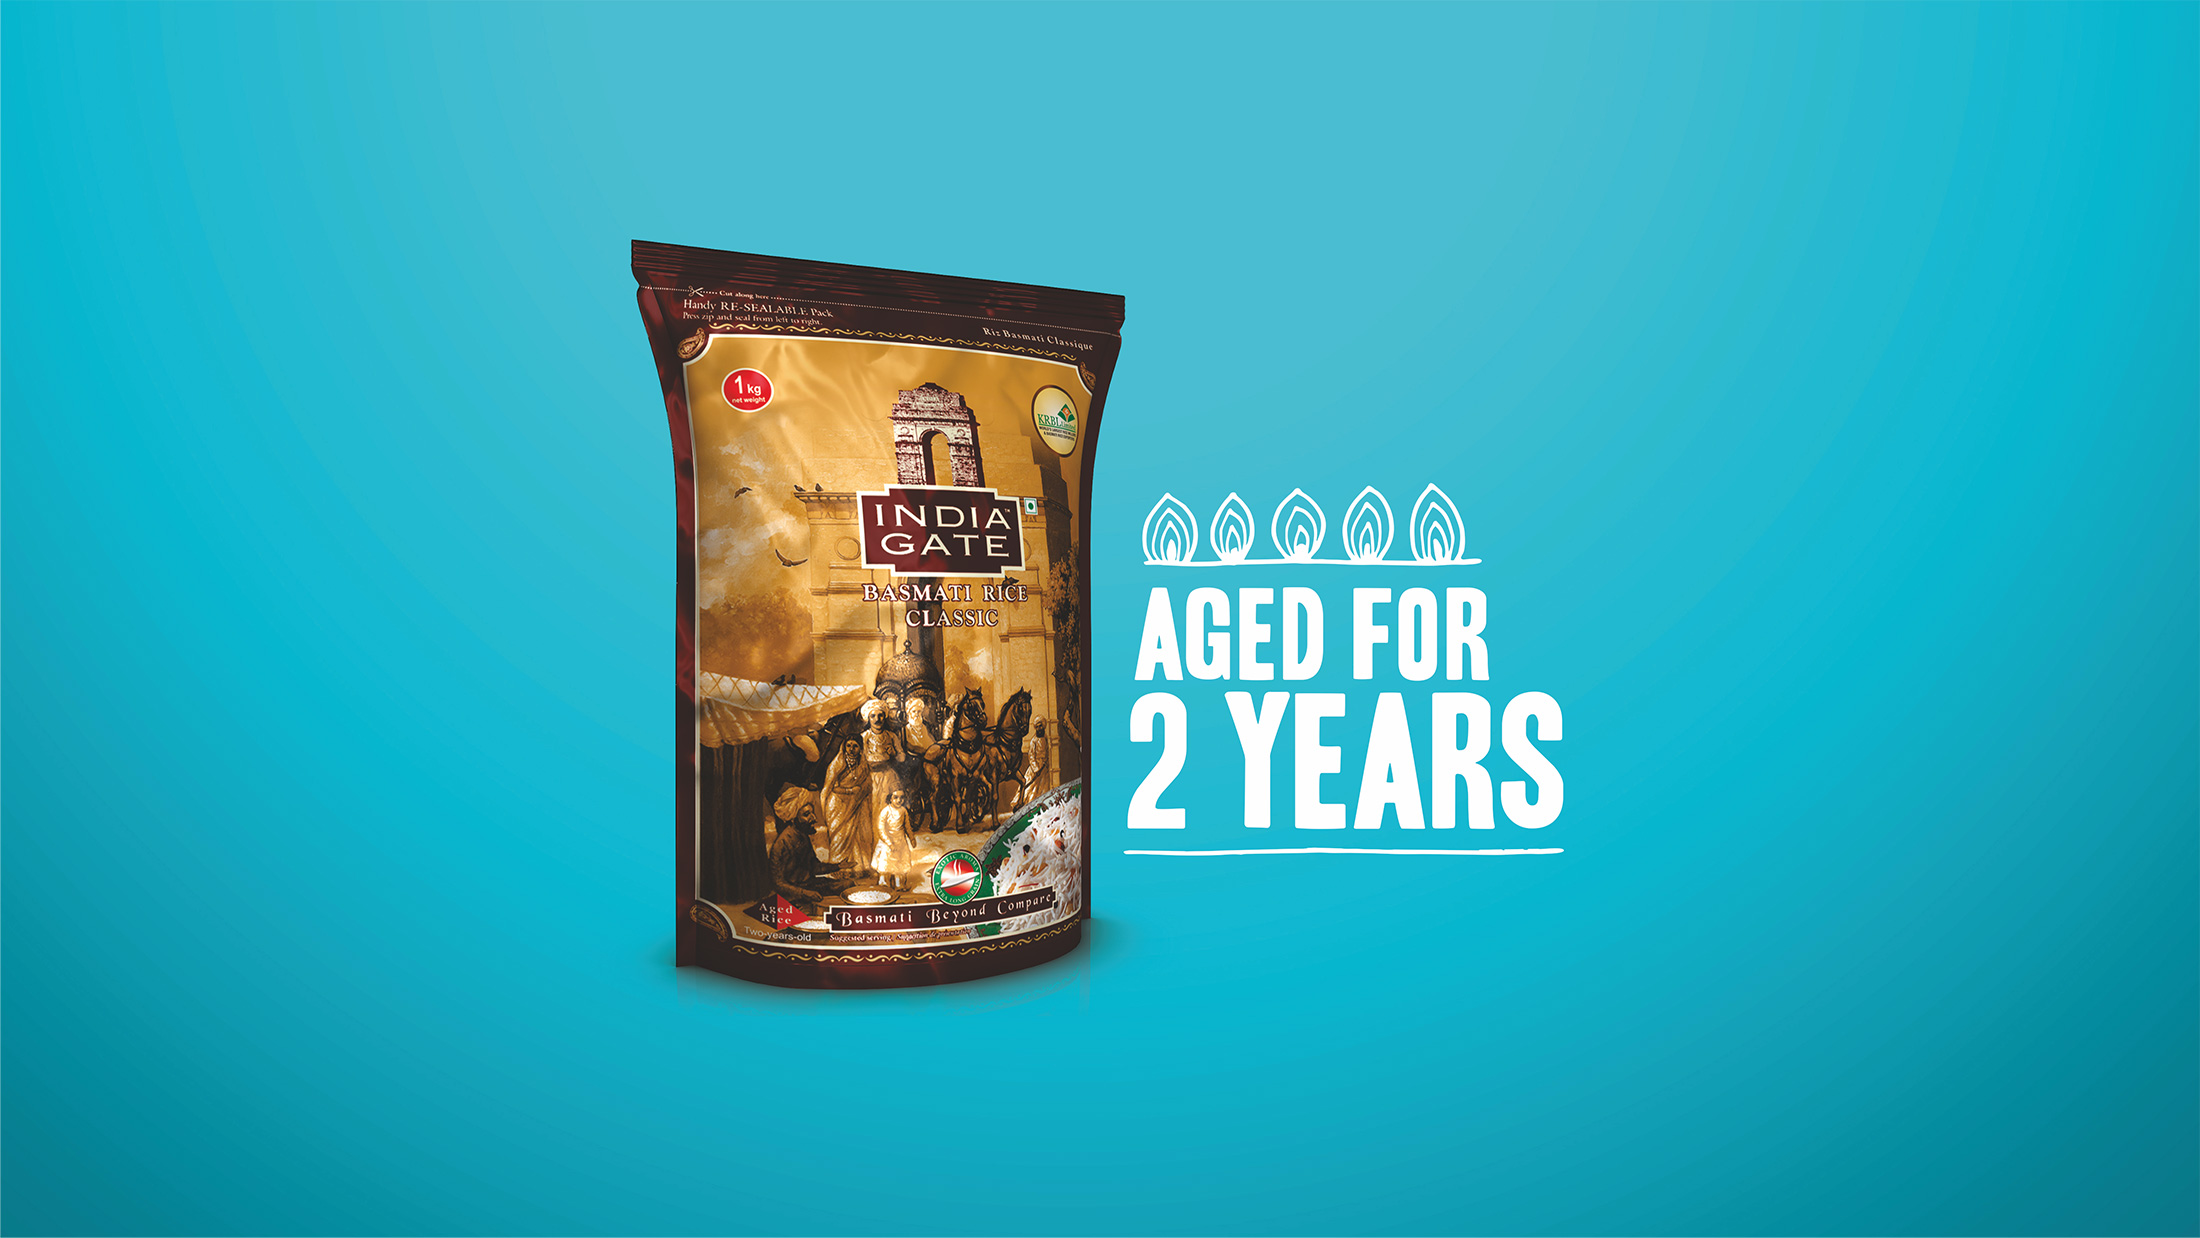 Saath Badehga, Swaad Badhega: Aged for 2 Years Campaign